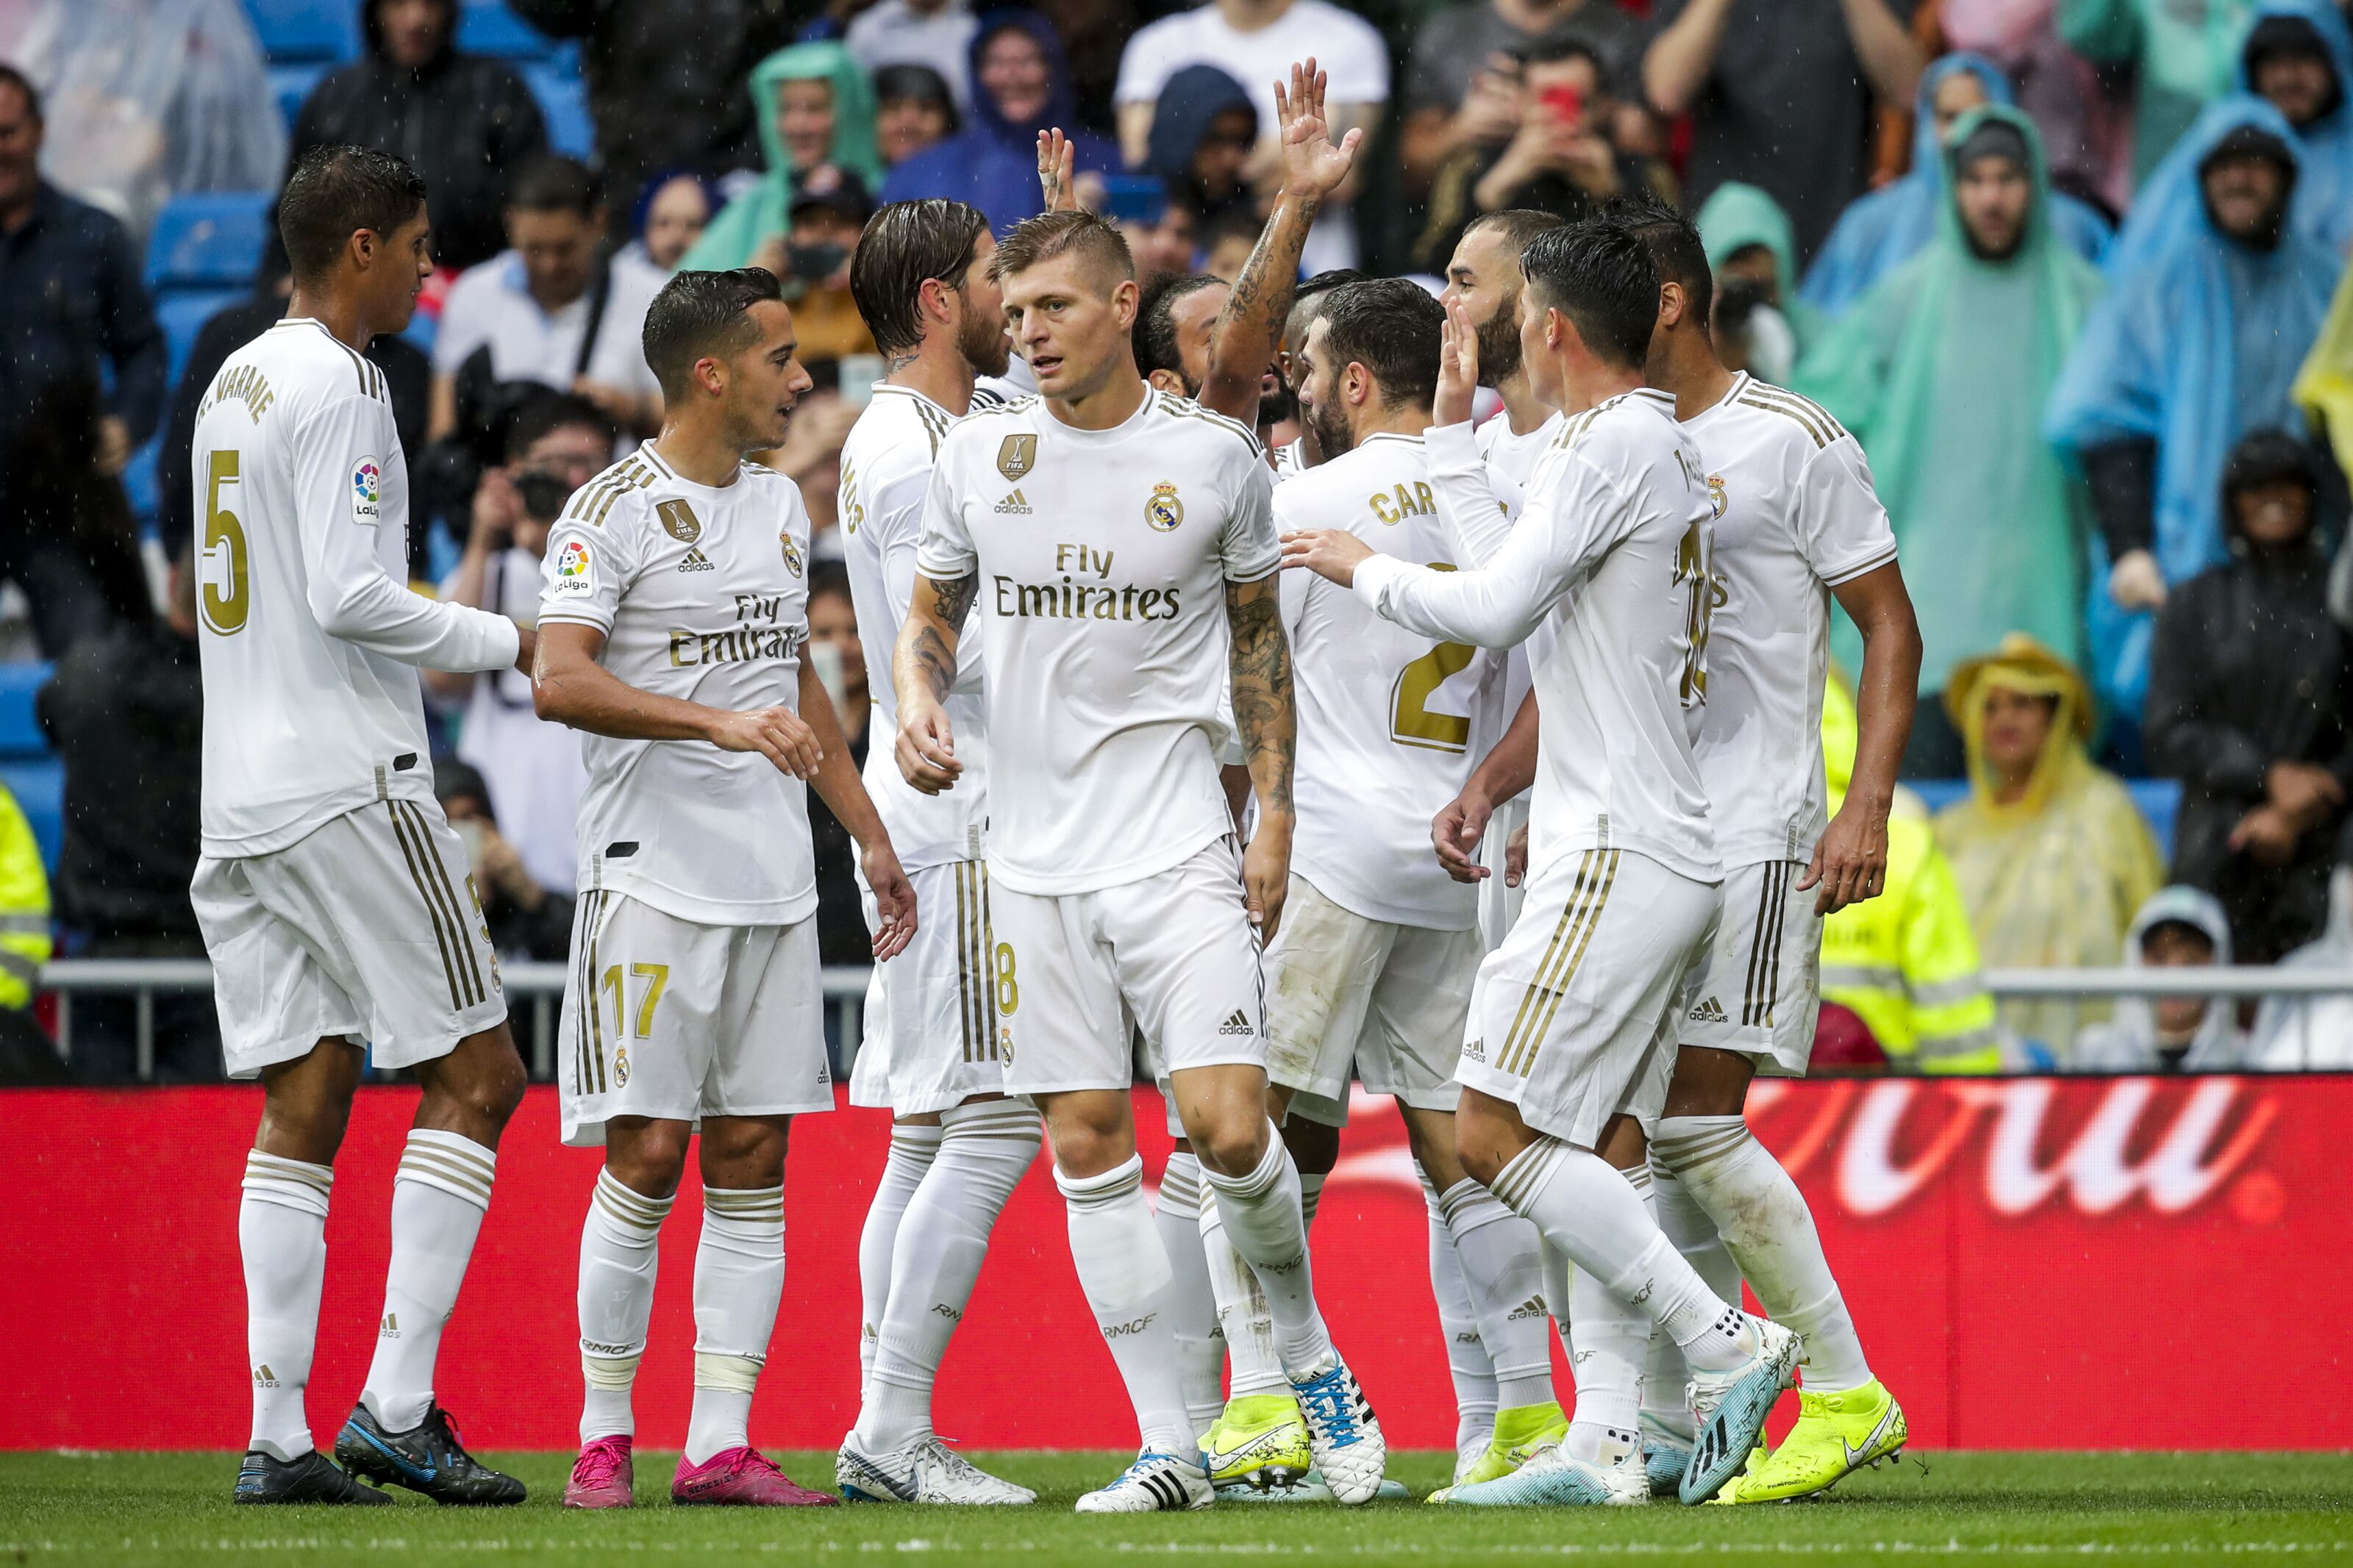 Real Madrid vs. Sevilla: There is a lot at stake tonight